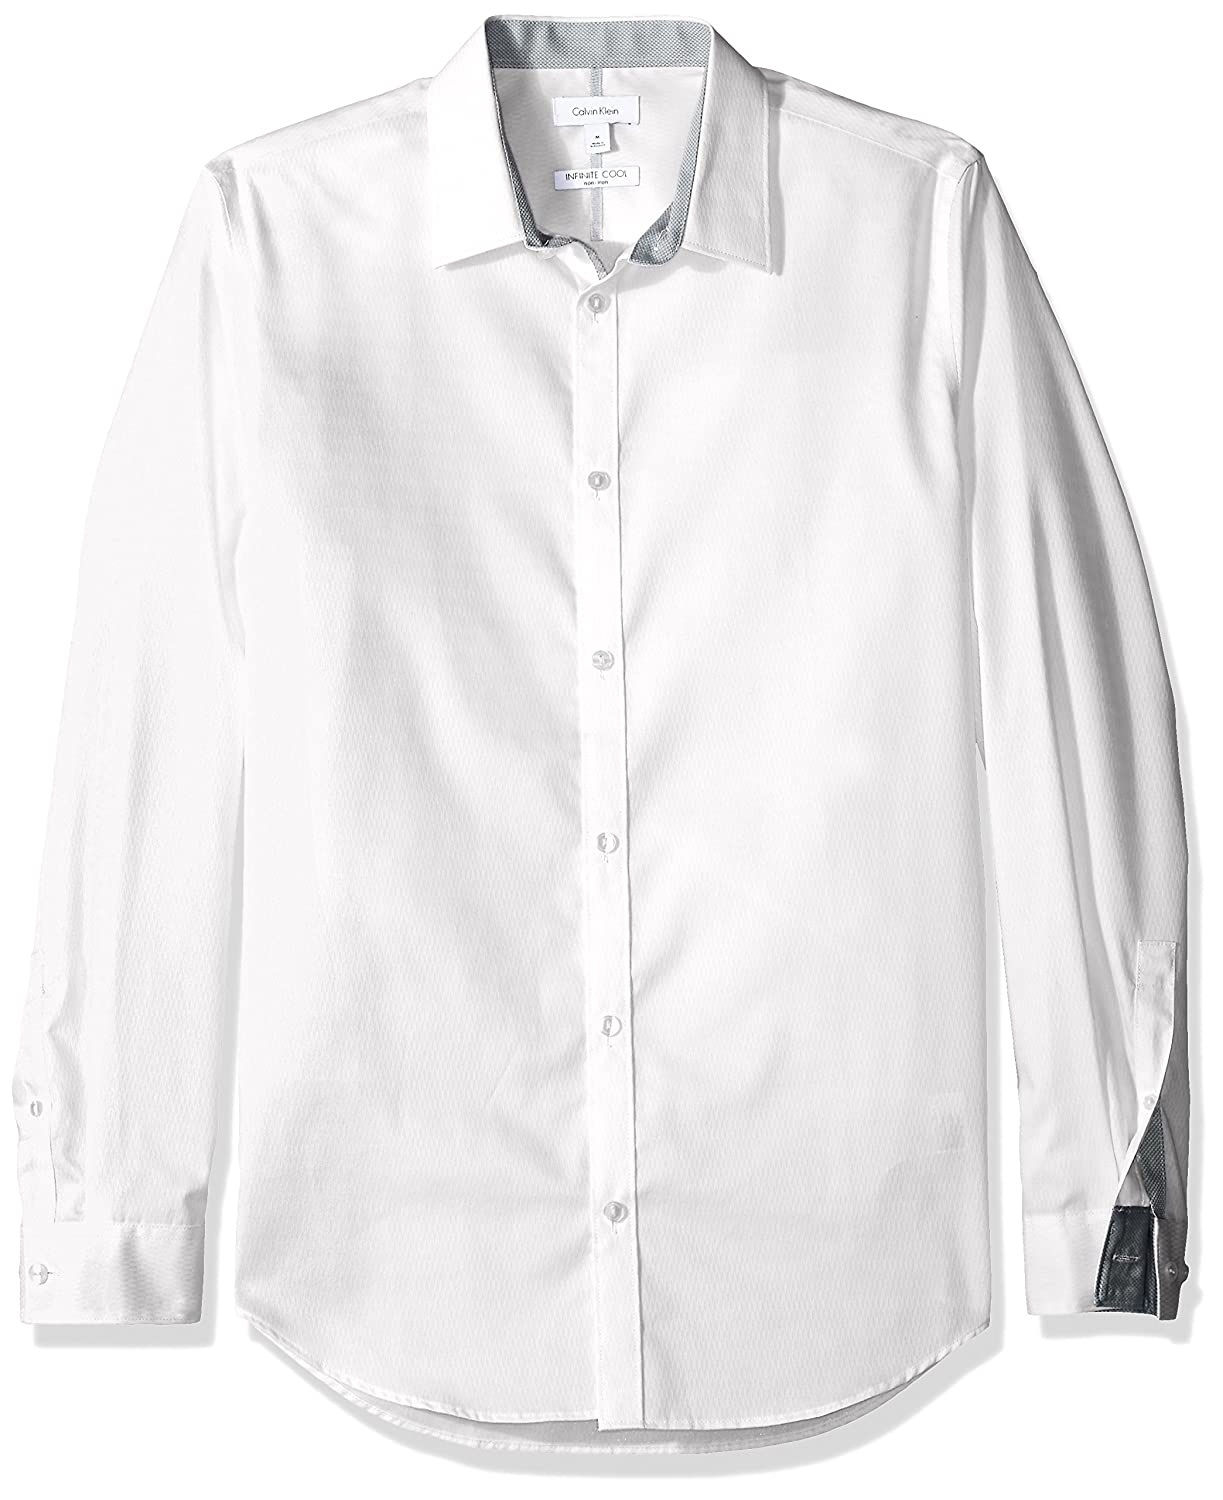 Cross border:- Calvin Klein Men's Chainlink Dobby Infinite Cool Long Sleeve Button Down Shirt low price